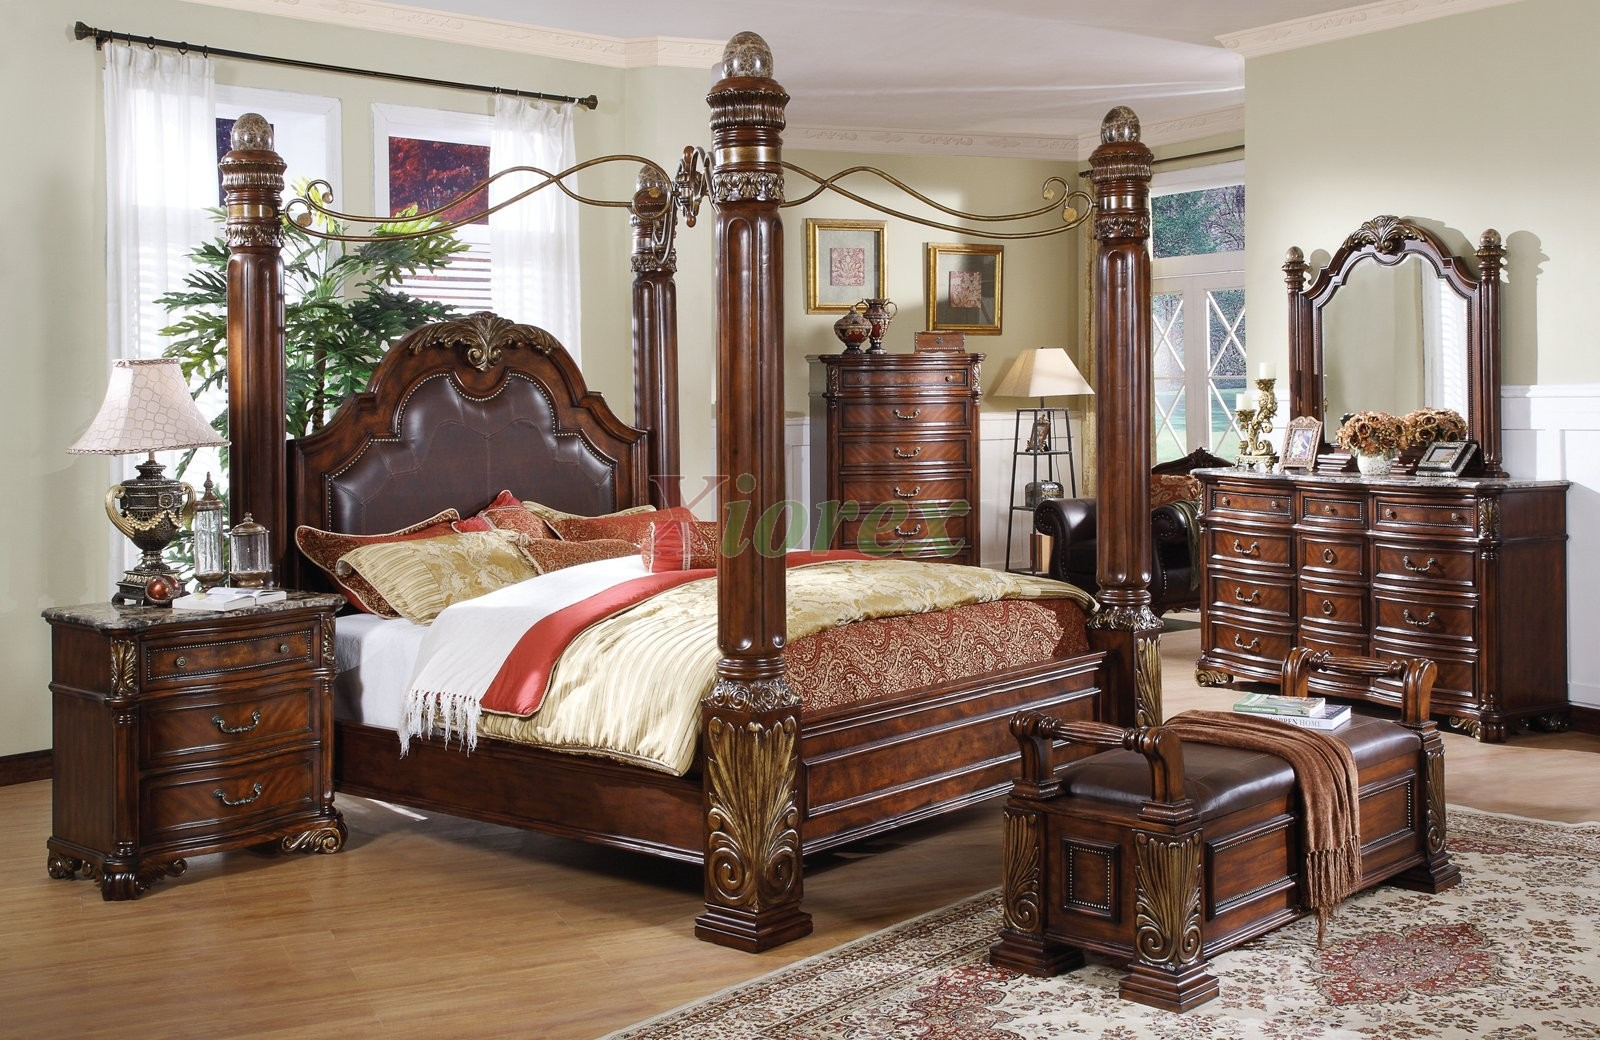 Canopy bed sets bedroom furniture sets w poster canopy for Bed and bedroom sets